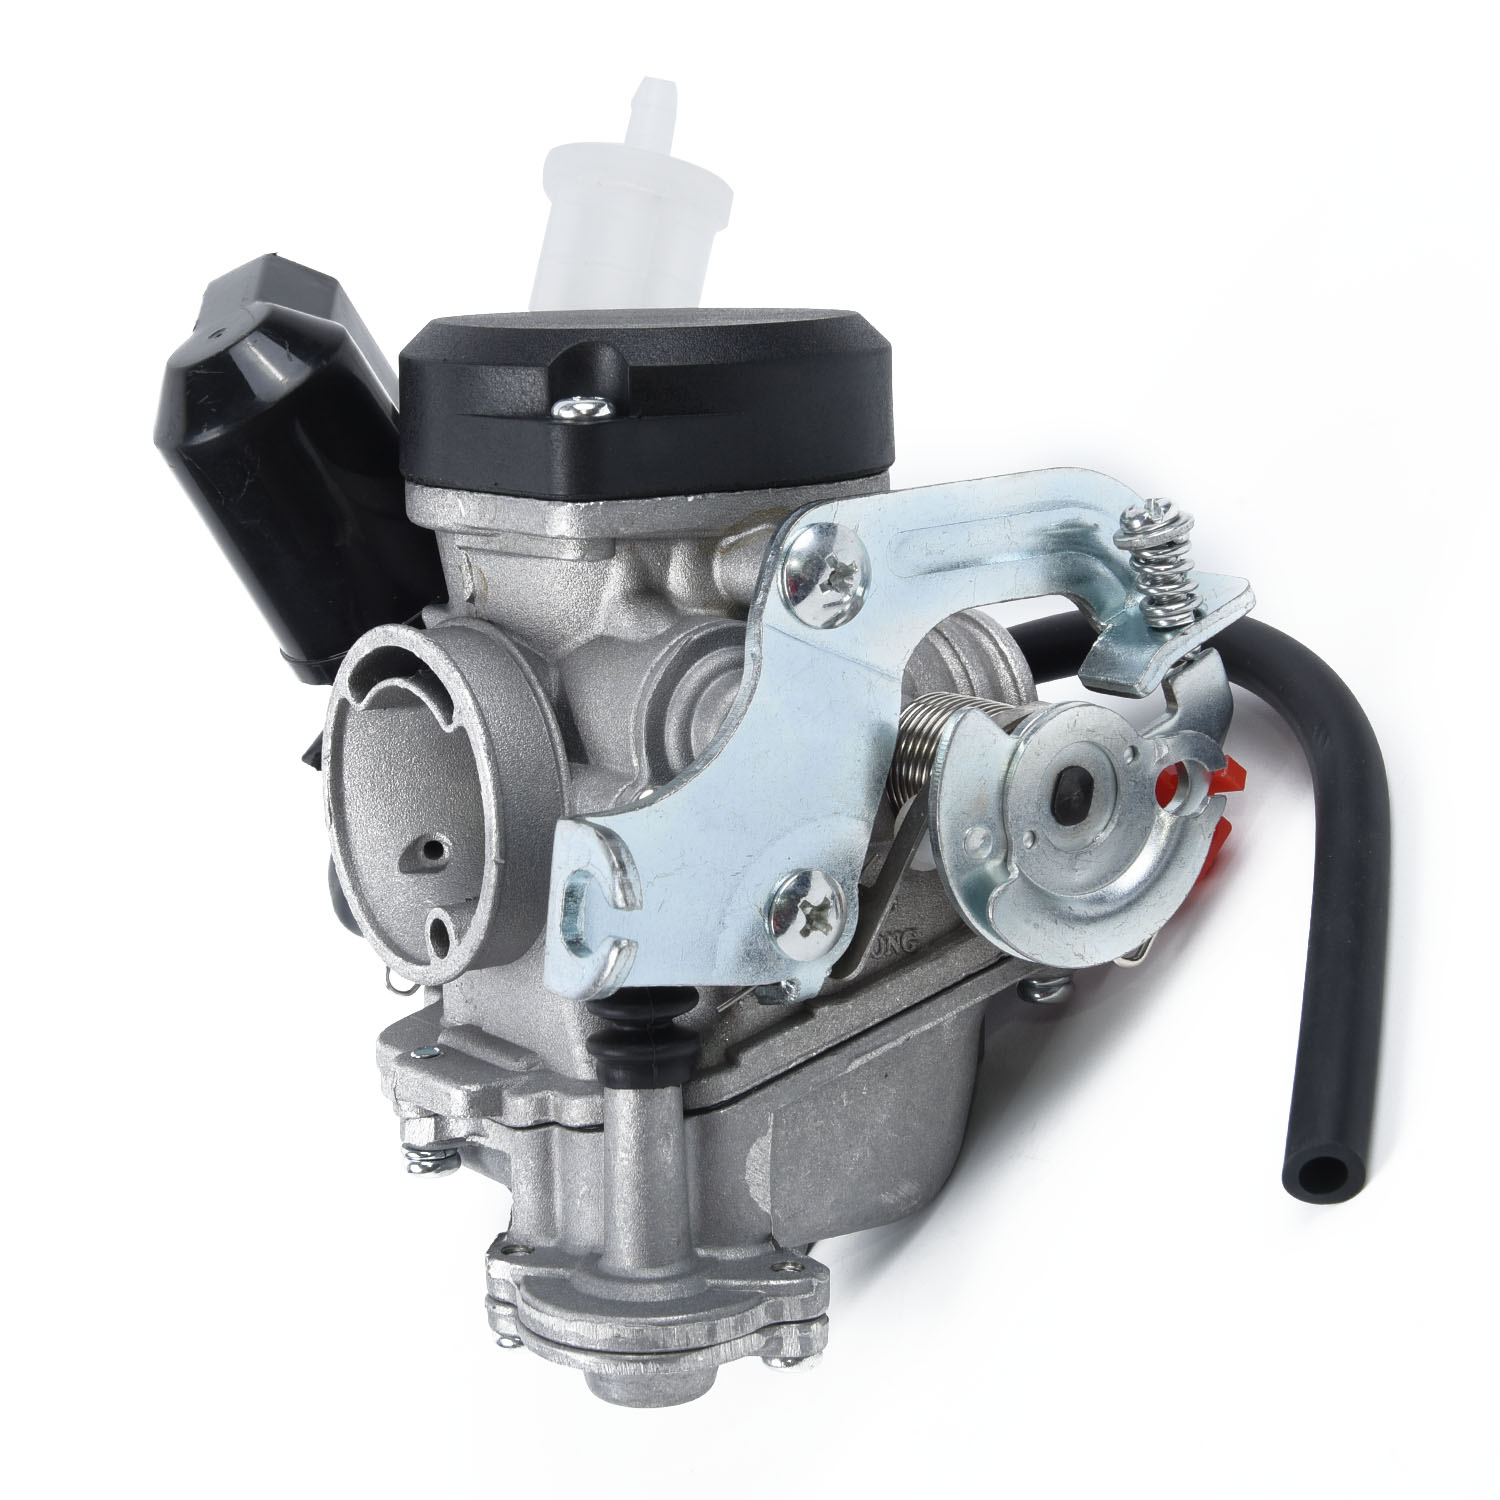 For <font><b>GY6</b></font> <font><b>50cc</b></font> PD18J CVK 139QMB Scooter Moped ATV Go-Karts <font><b>Carburetor</b></font> Engine Motor image